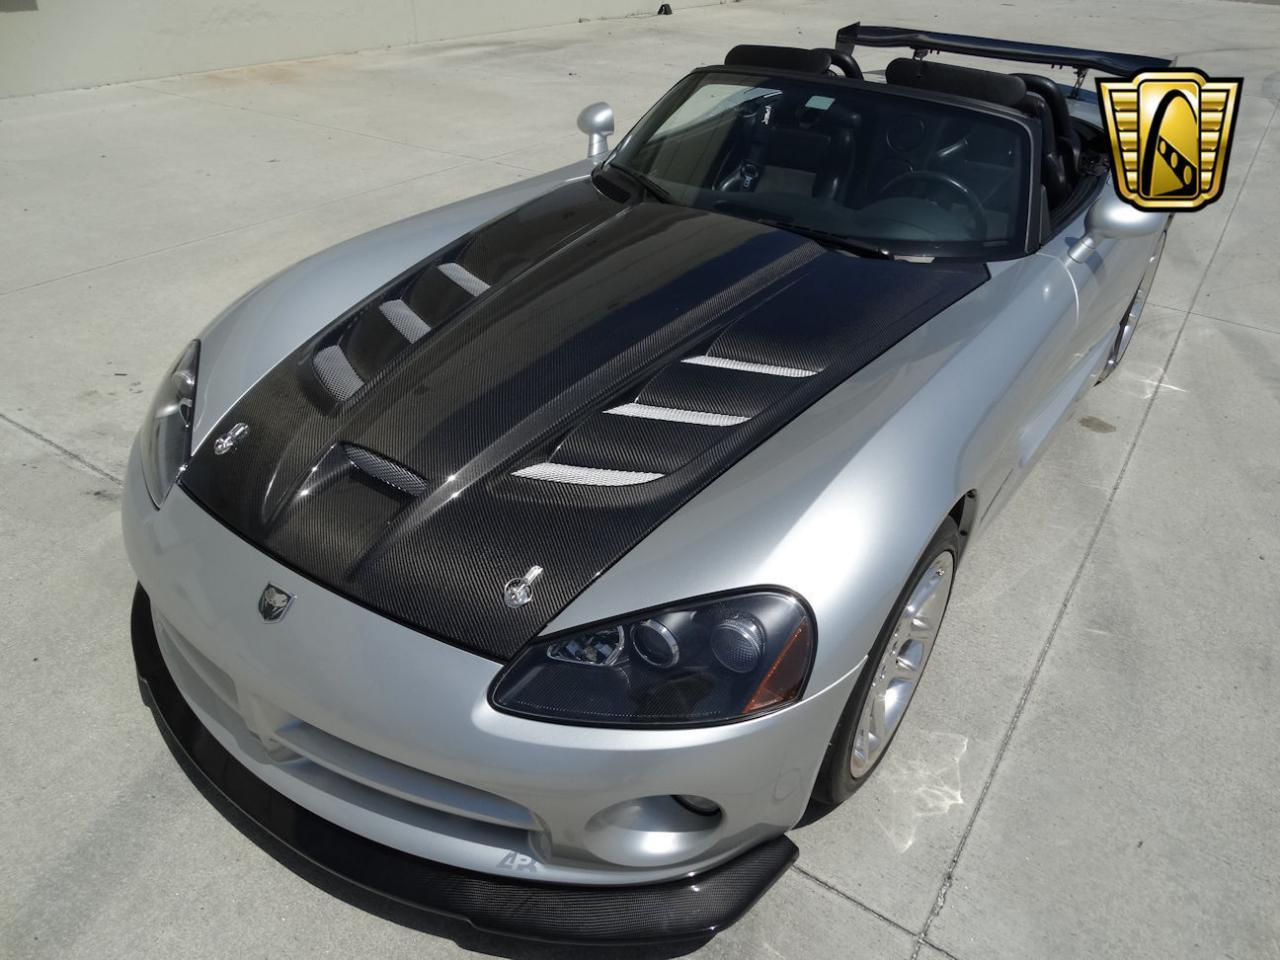 Large Picture of 2004 Viper - $54,000.00 Offered by Gateway Classic Cars - Fort Lauderdale - L6GU